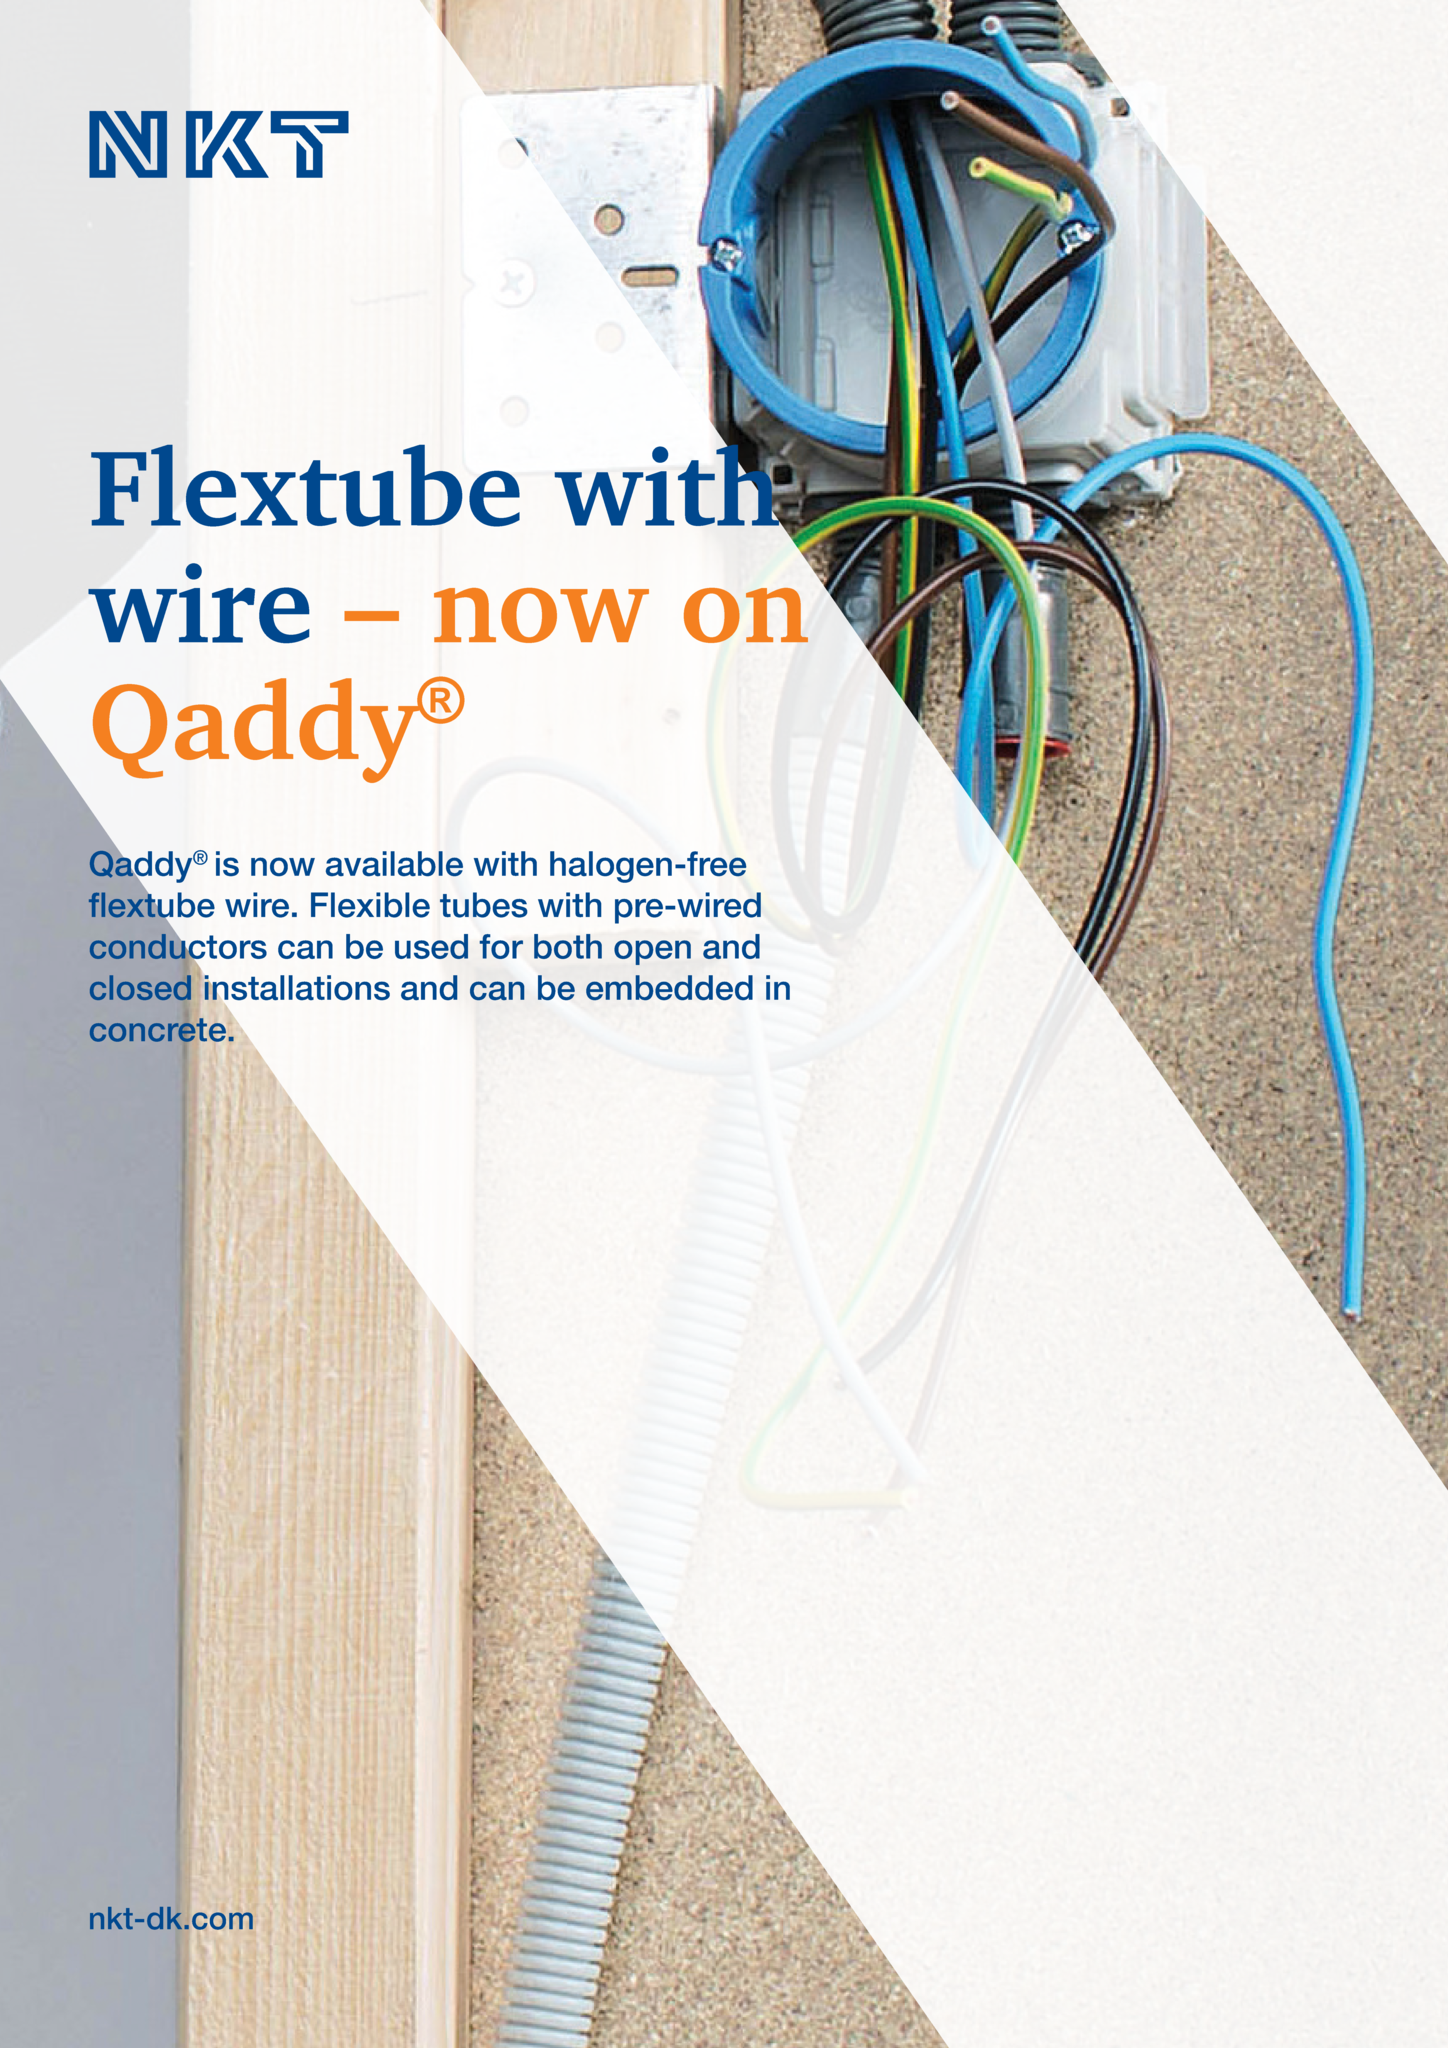 Referenceflyer_flextube-with-wire-now-on-qaddy.pdf